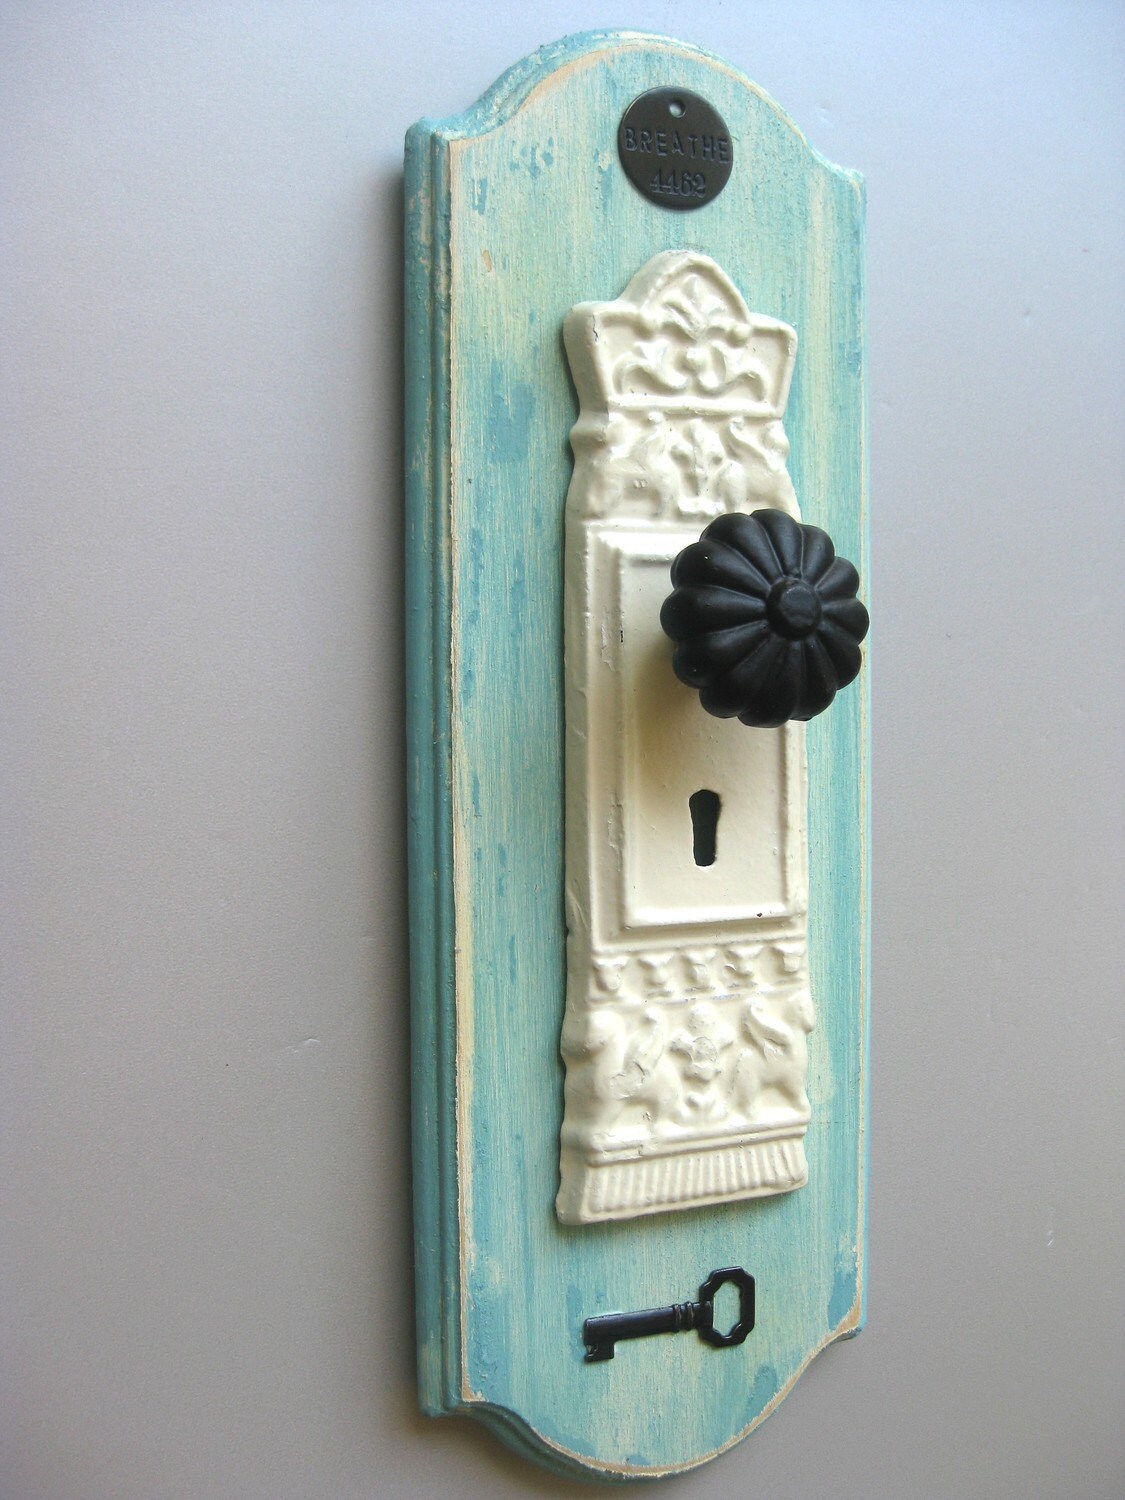 Farmhouse Hand Towel Holder Farmhouse Fresh Aqua Doorknob Hook Breathe